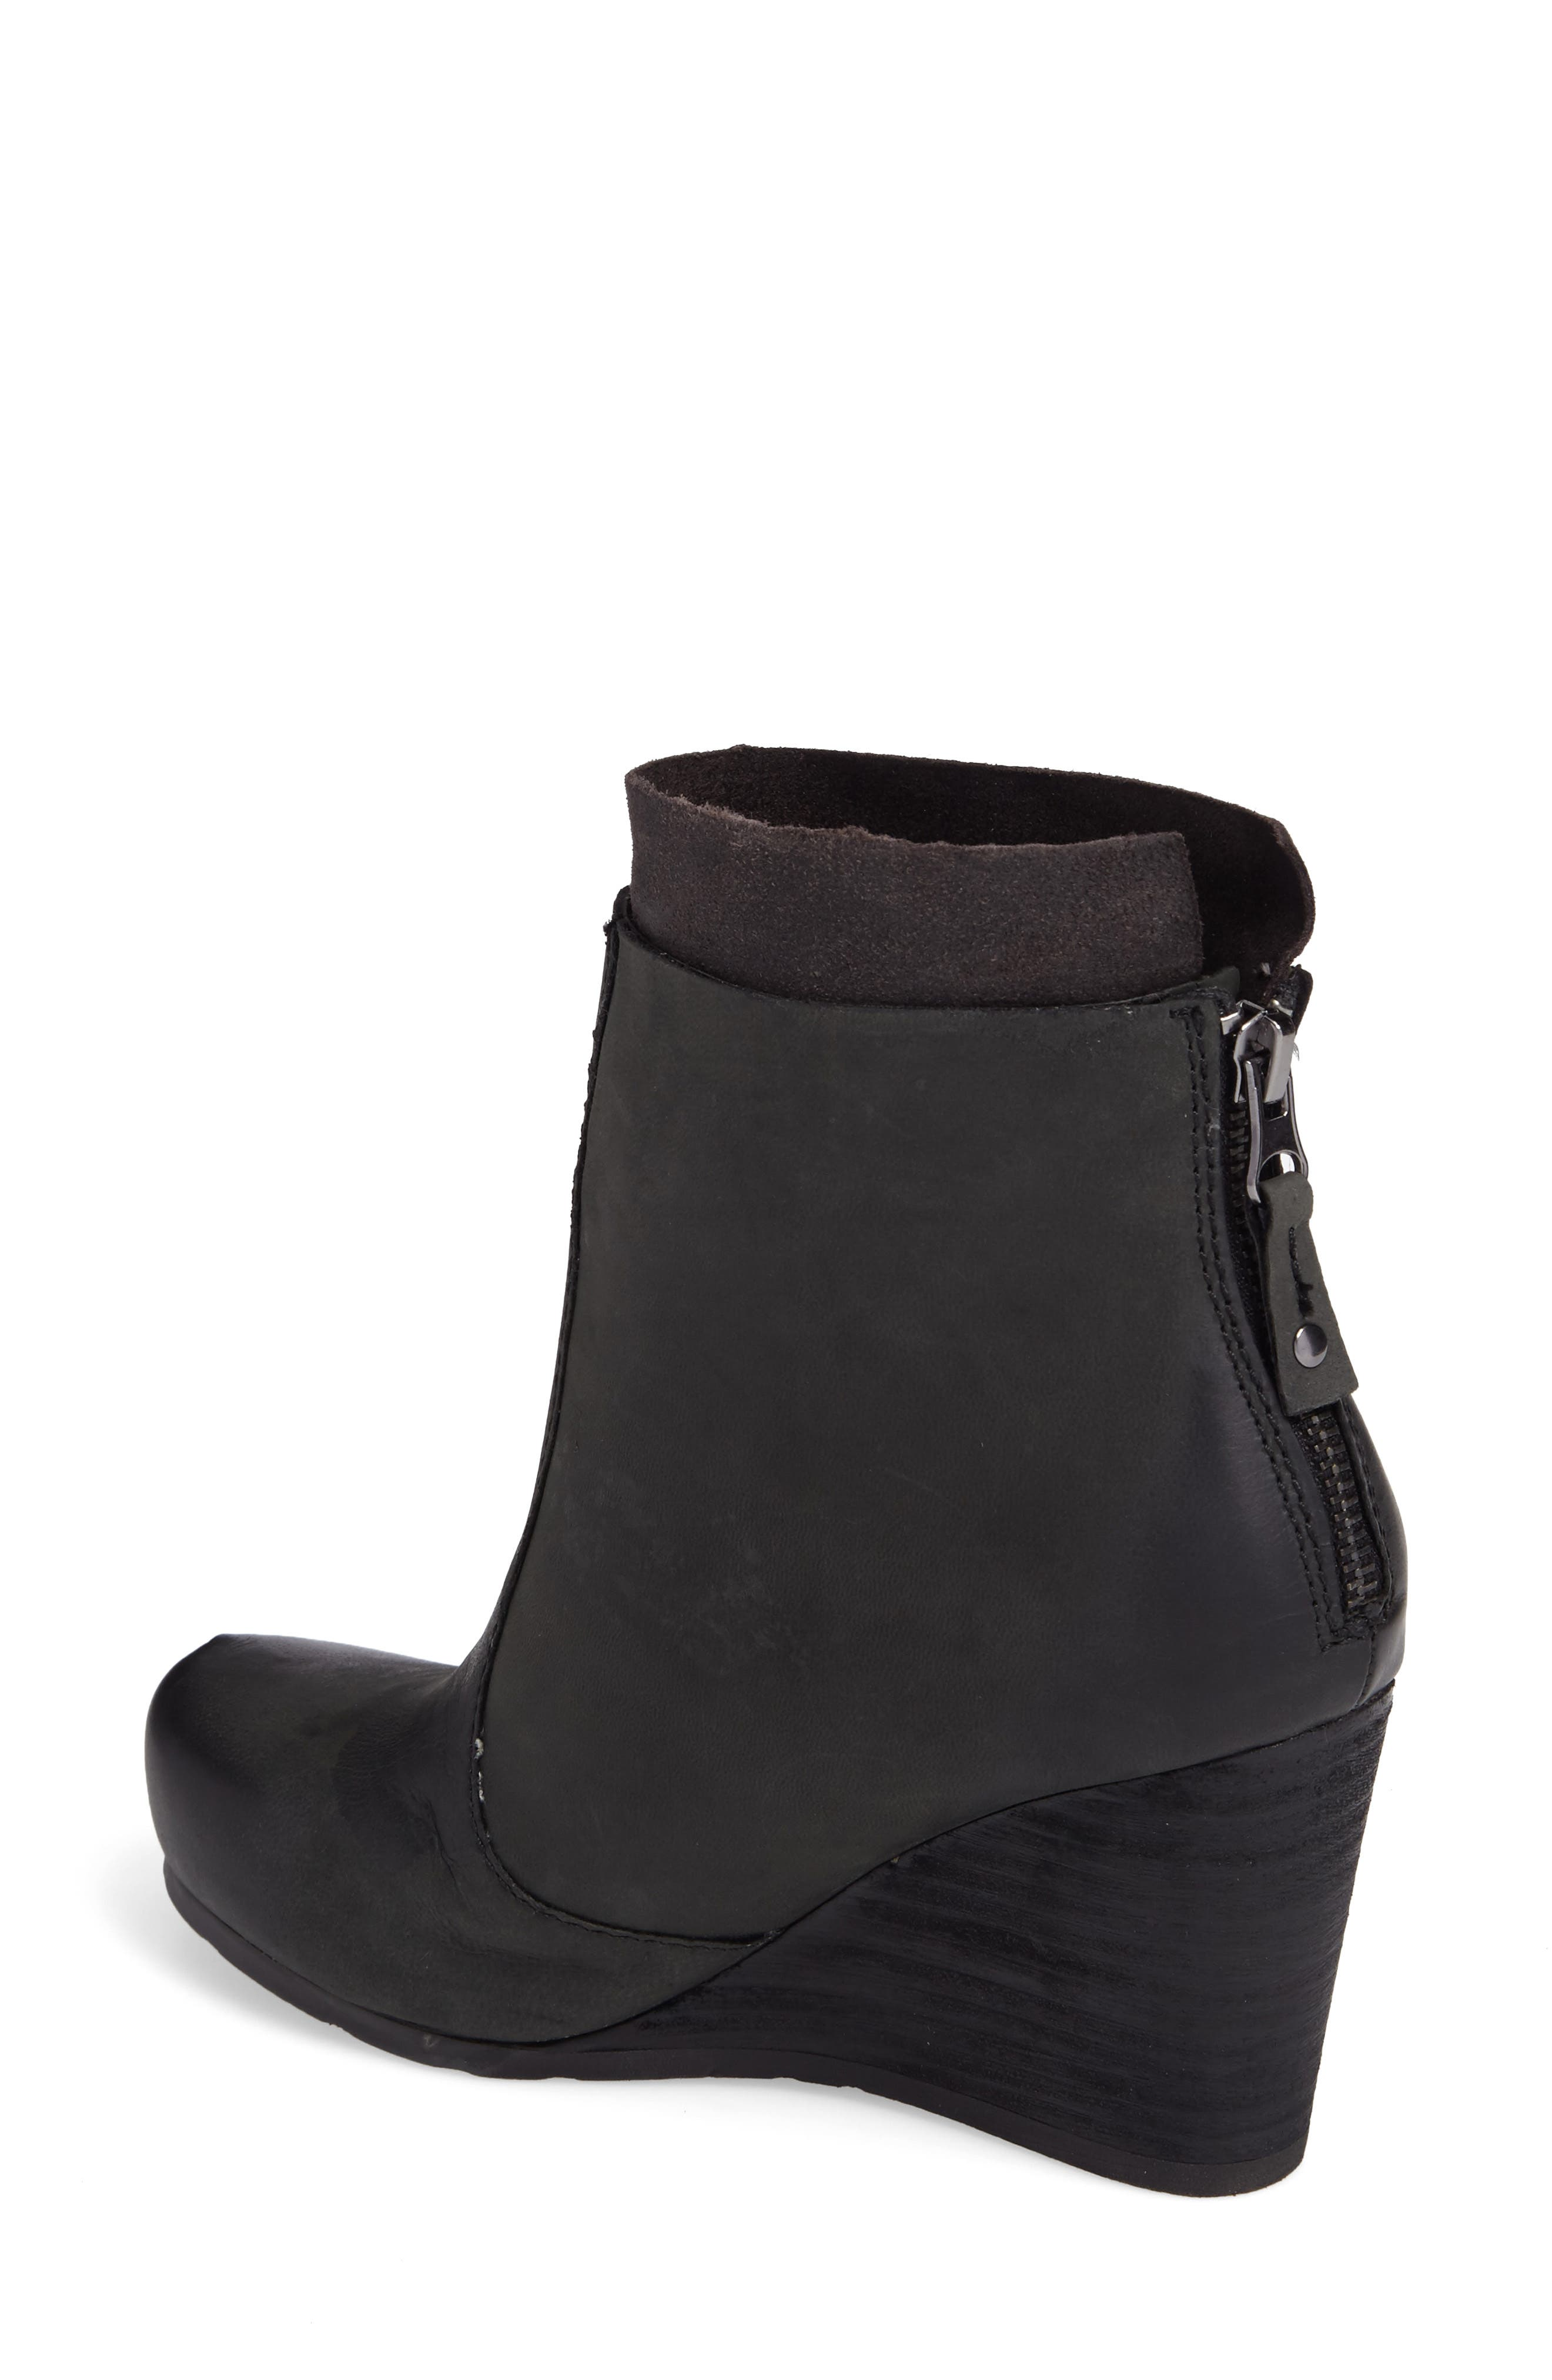 Alternate Image 2  - OTBT Vagary Wedge Bootie (Women)